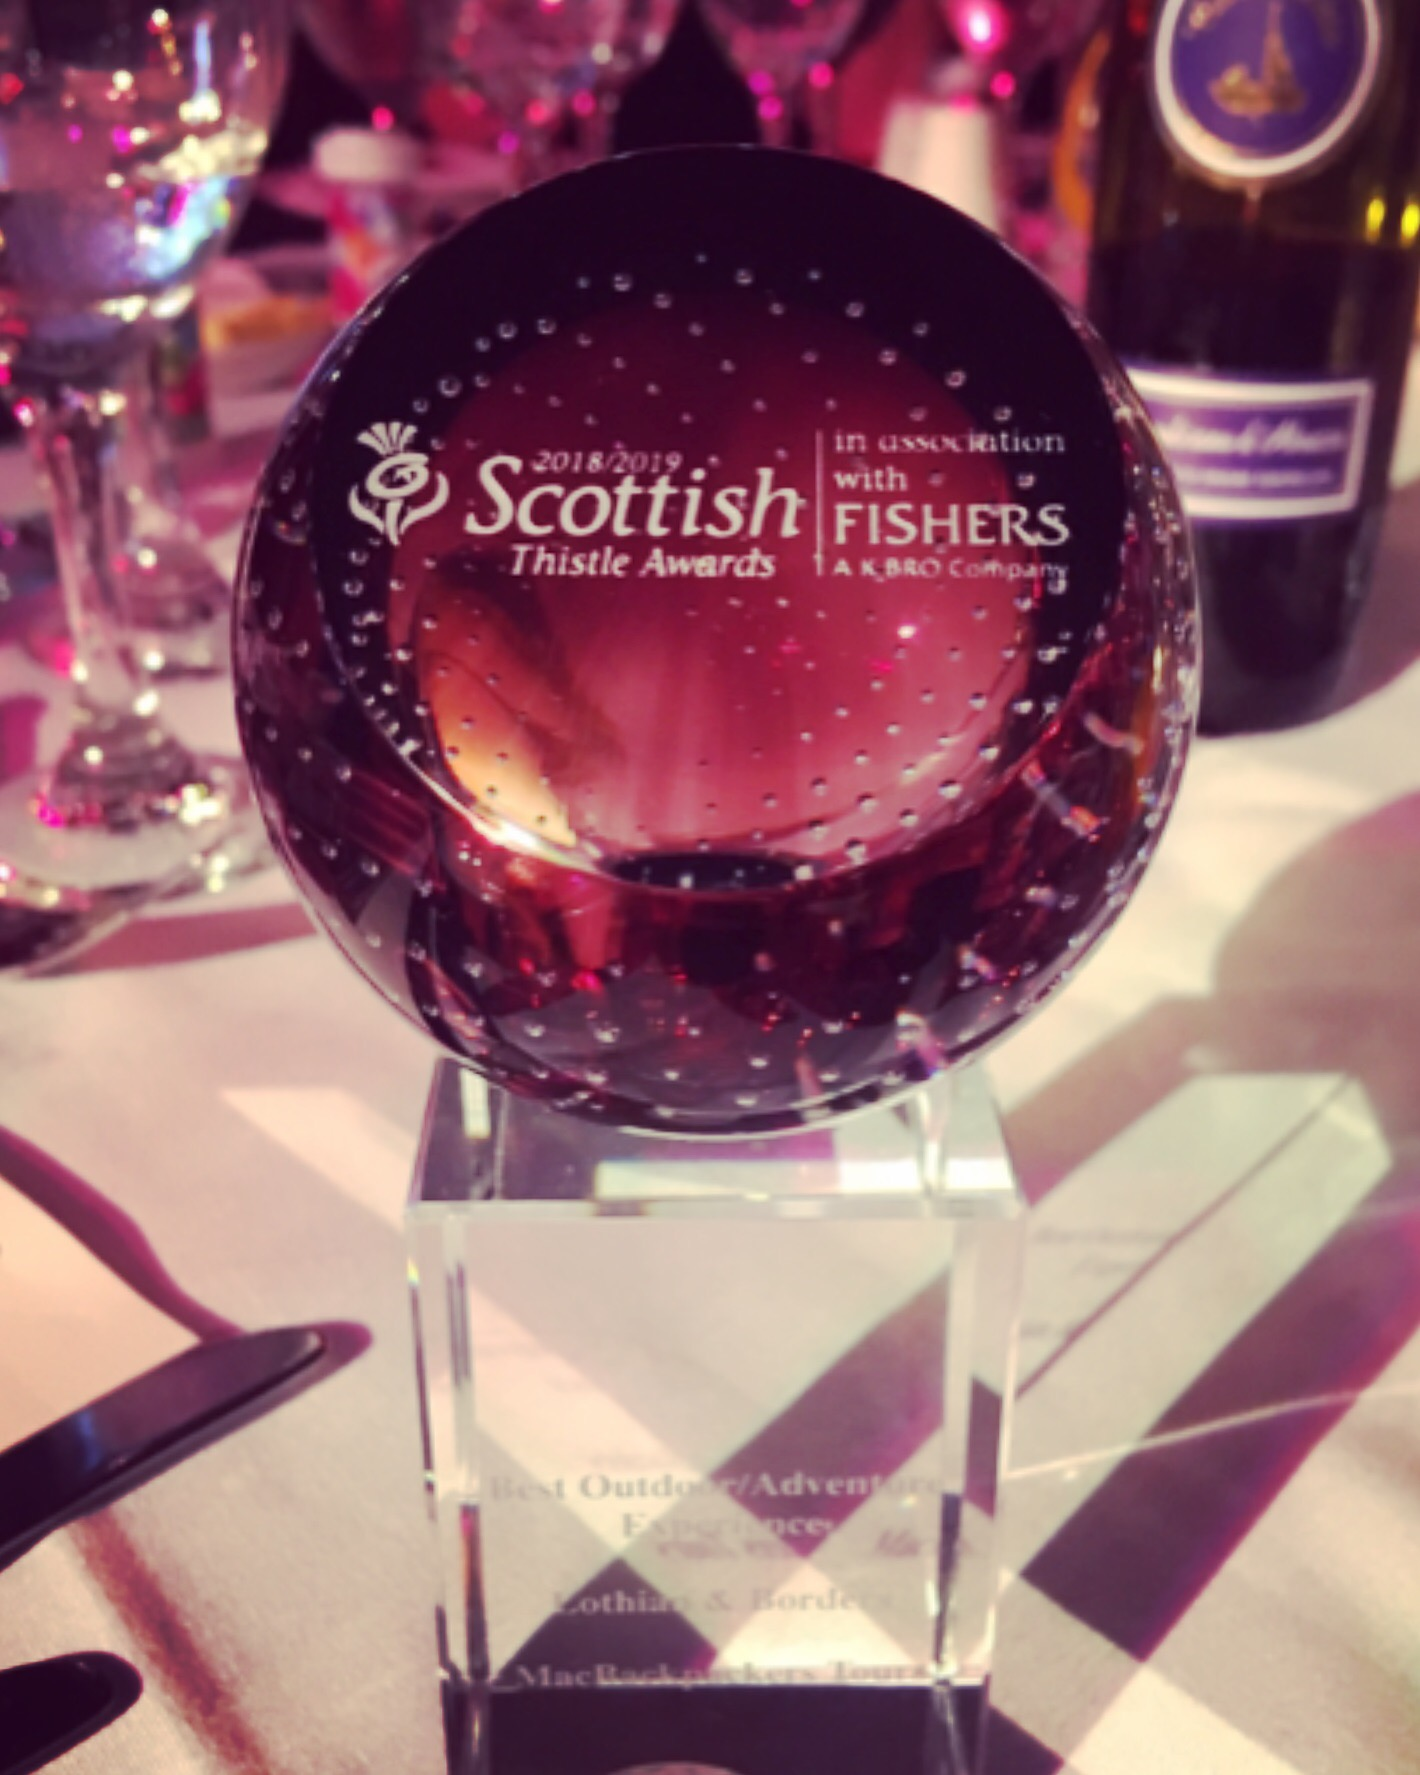 Scottish Thistle Awards Winner - Best Outdoor/Adventure Experience